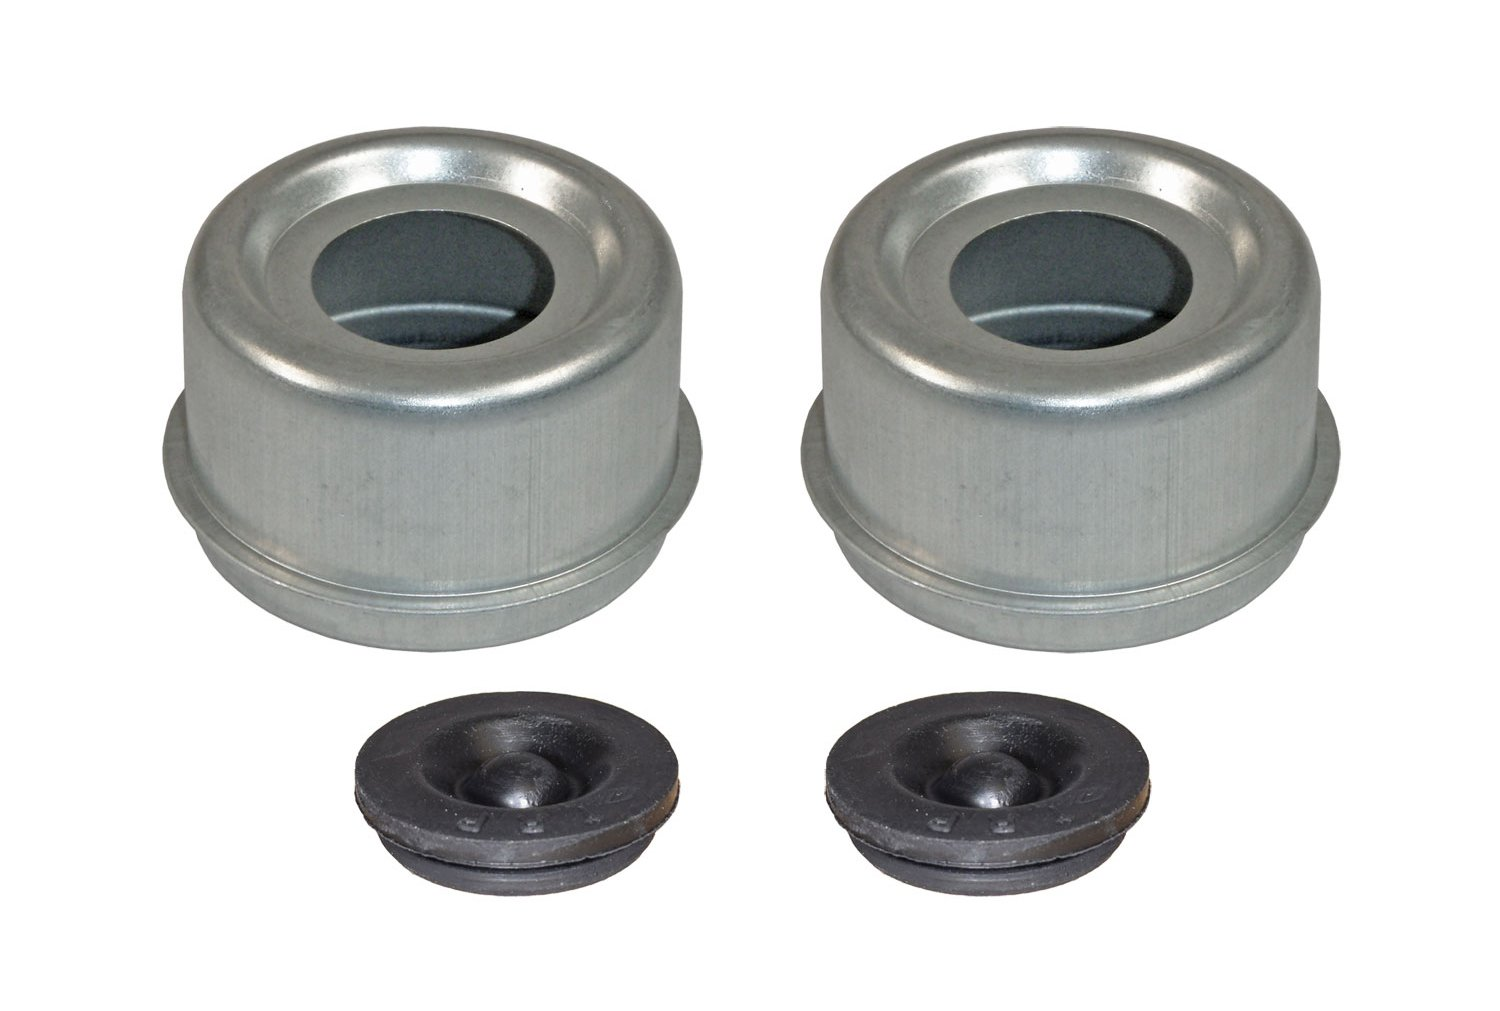 E-Z Lube Grease Caps With Rubber Plugs - Pair (EZ2-PR)